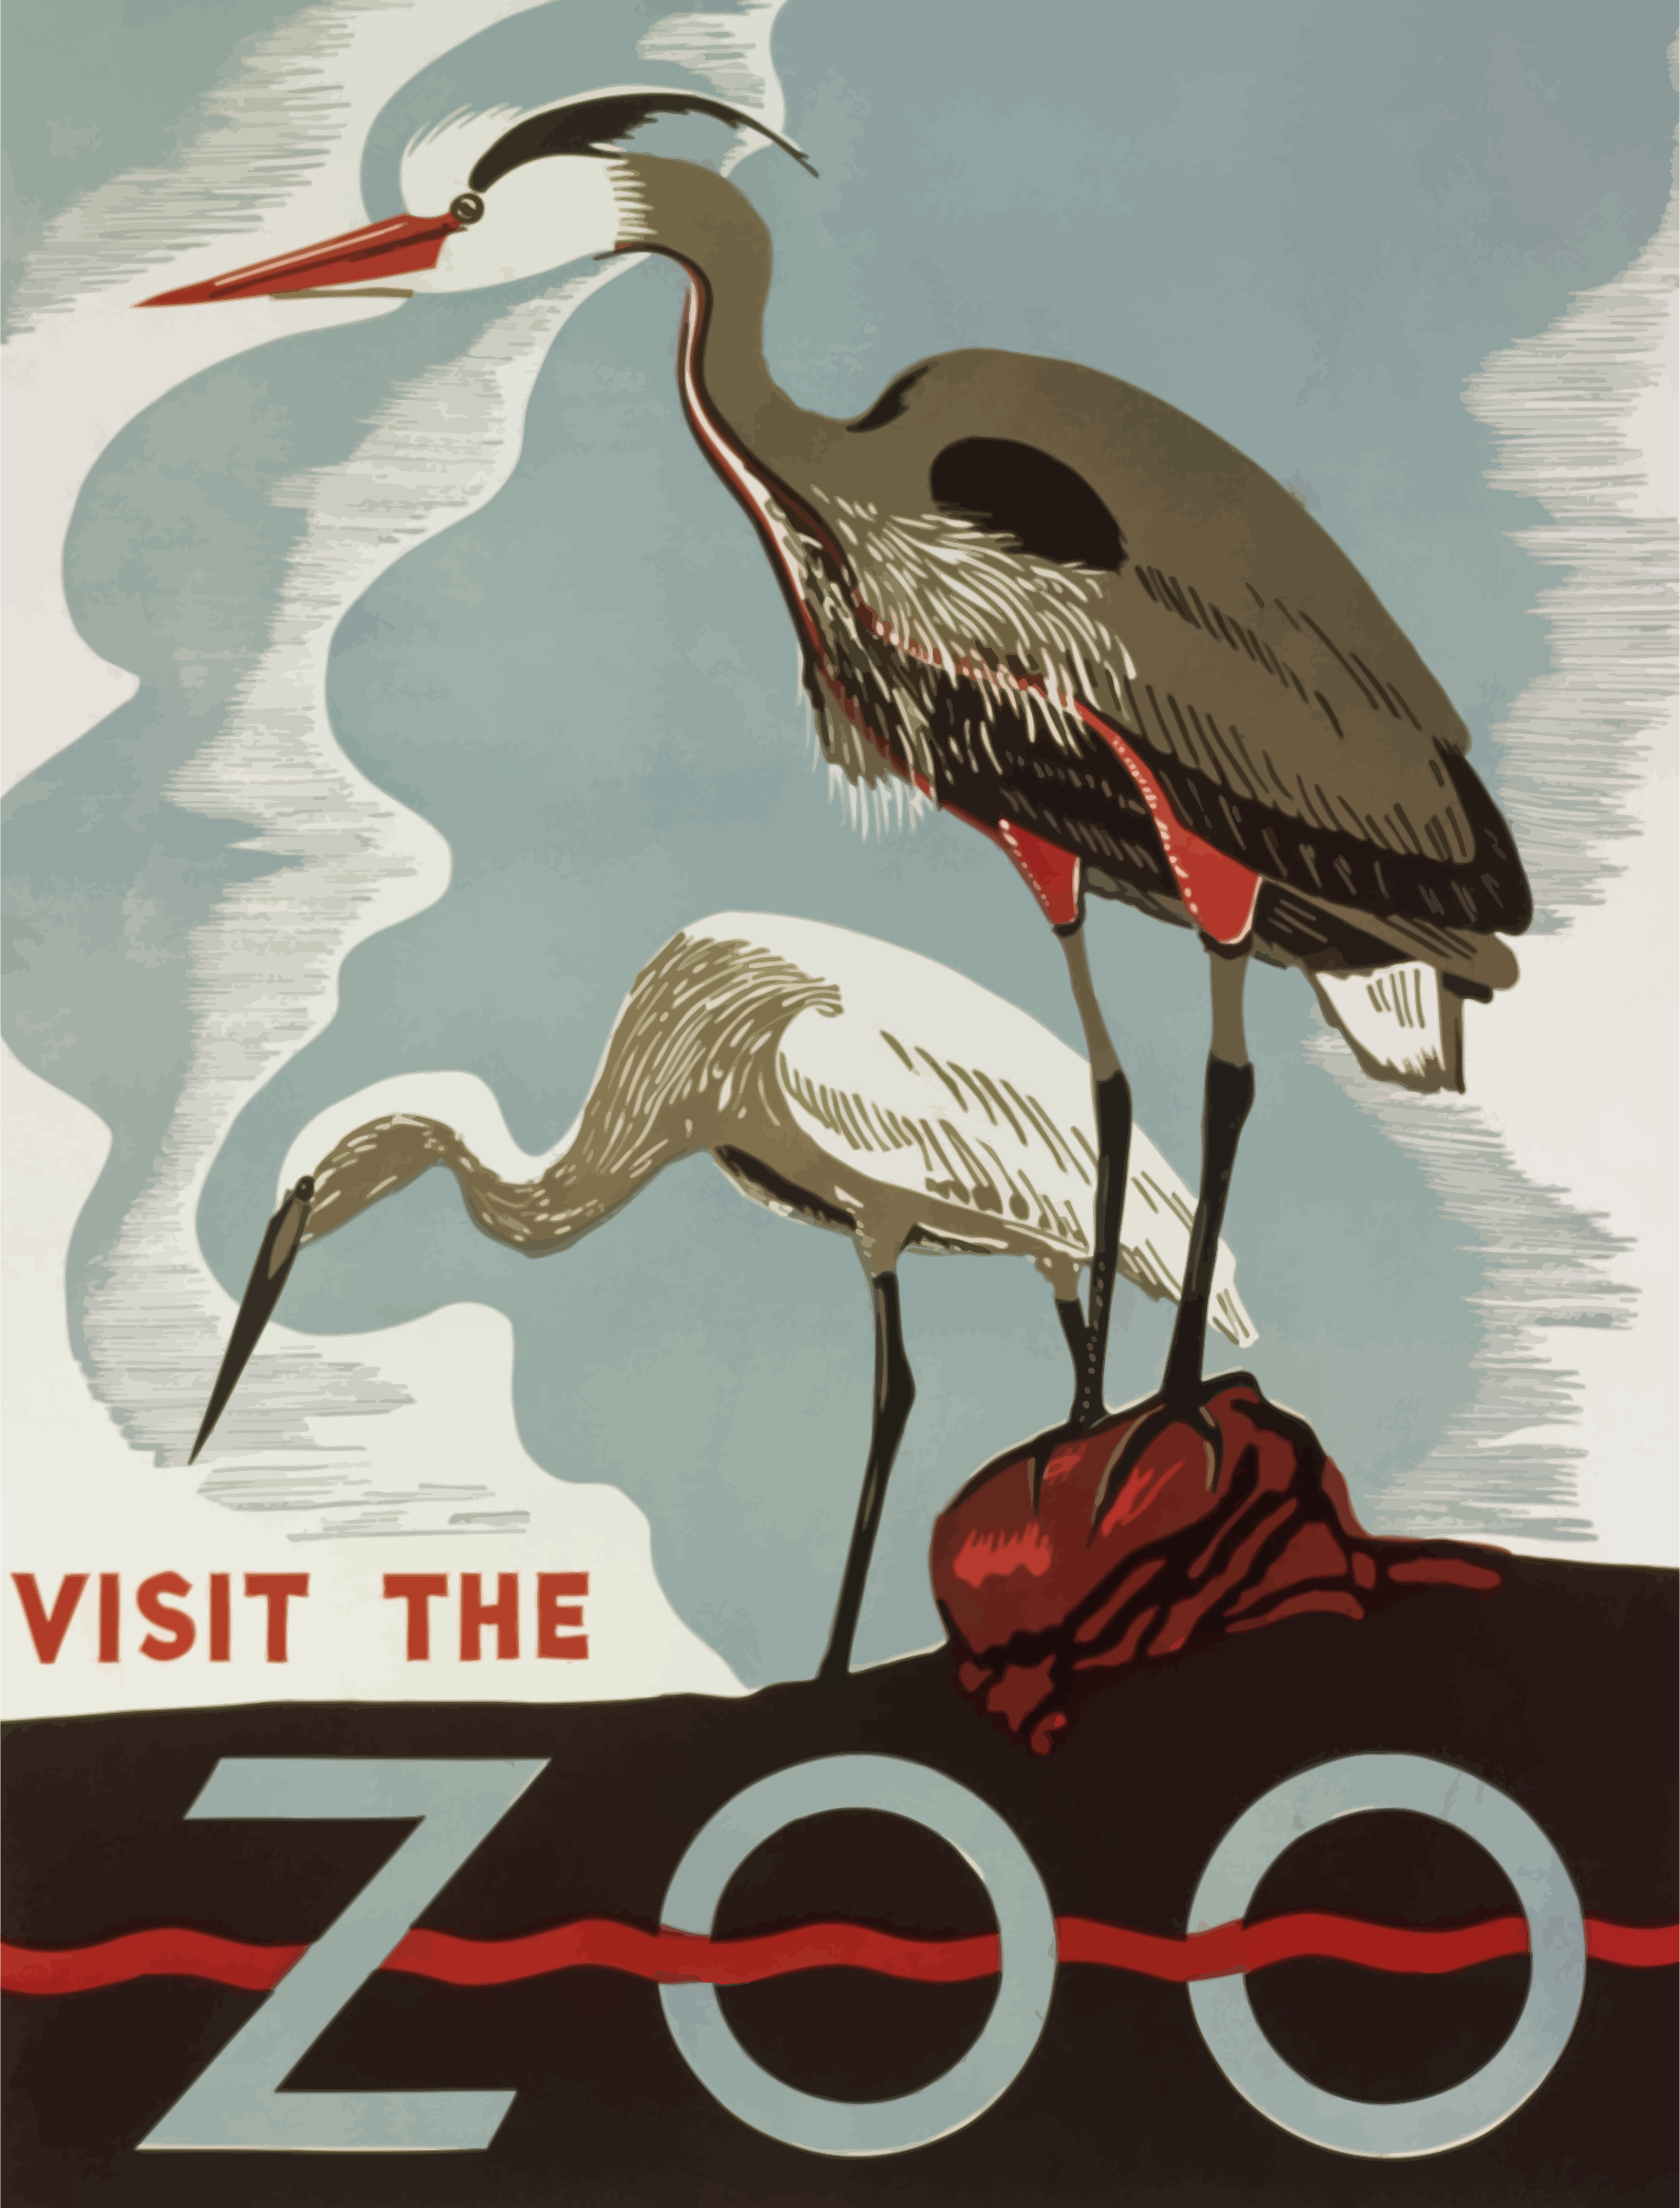 Visit zoo poster 4 by Firkin